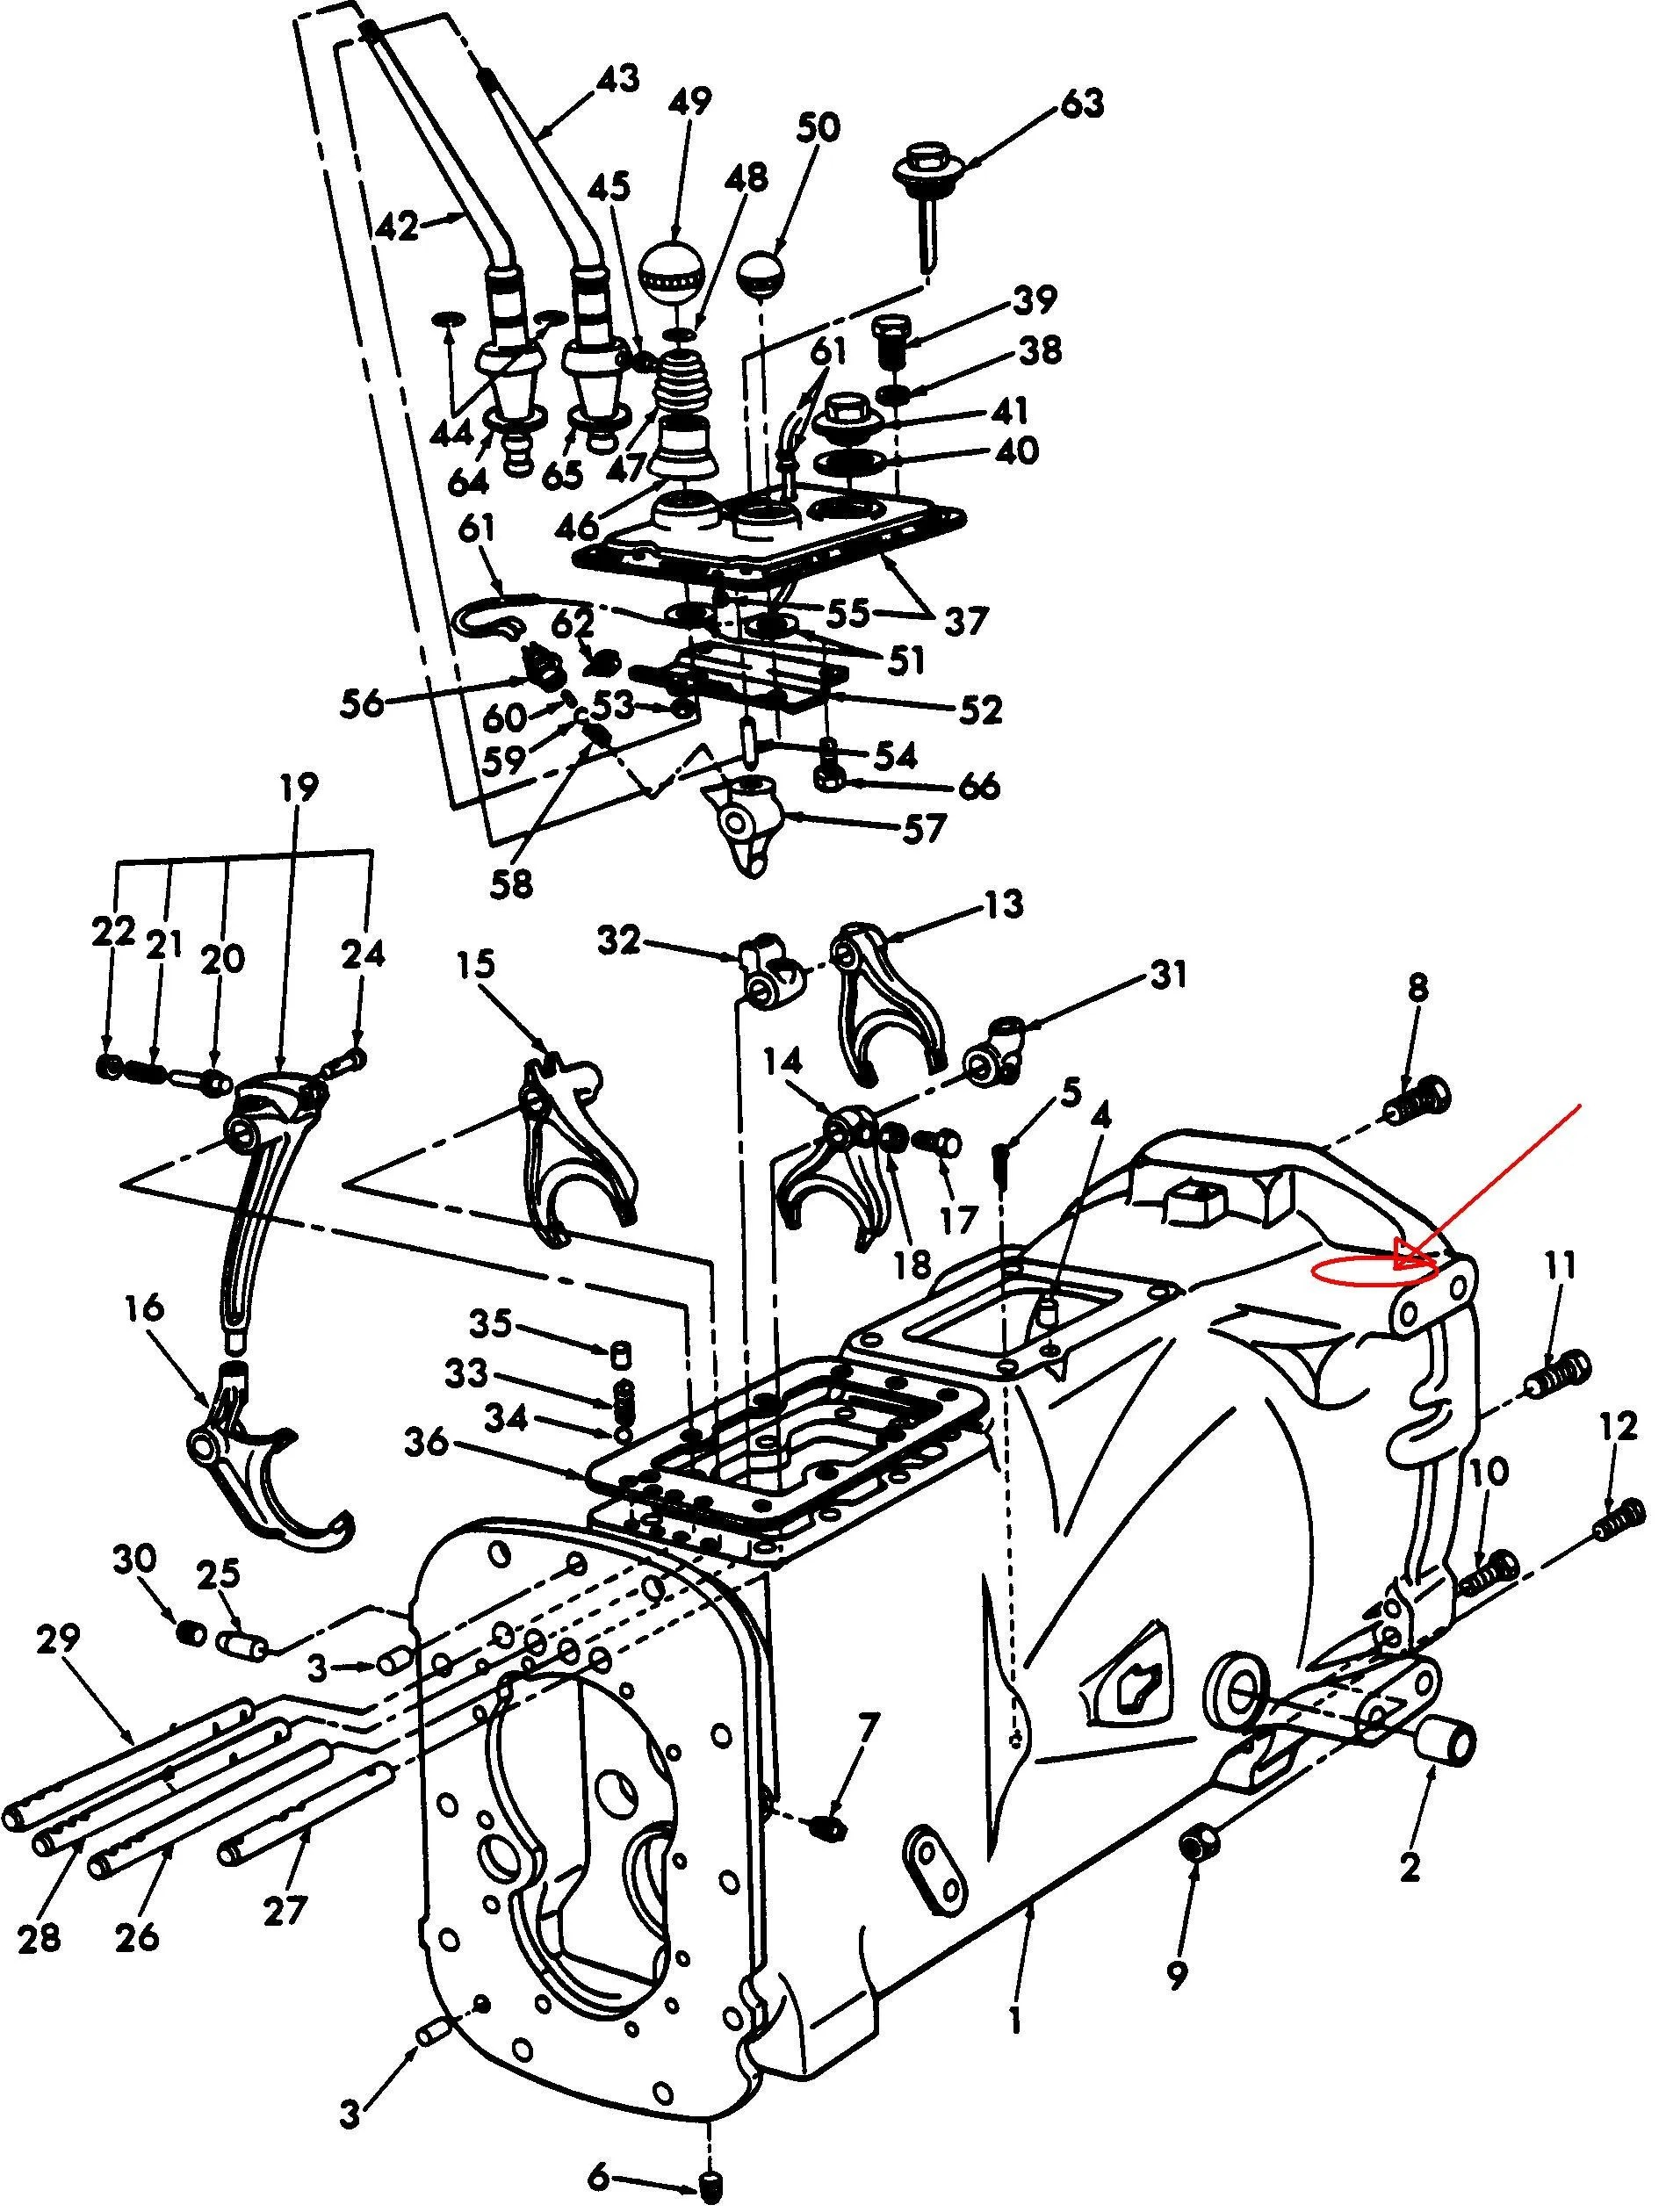 hight resolution of  wiring diagram for a 1951 ford 8n tractor